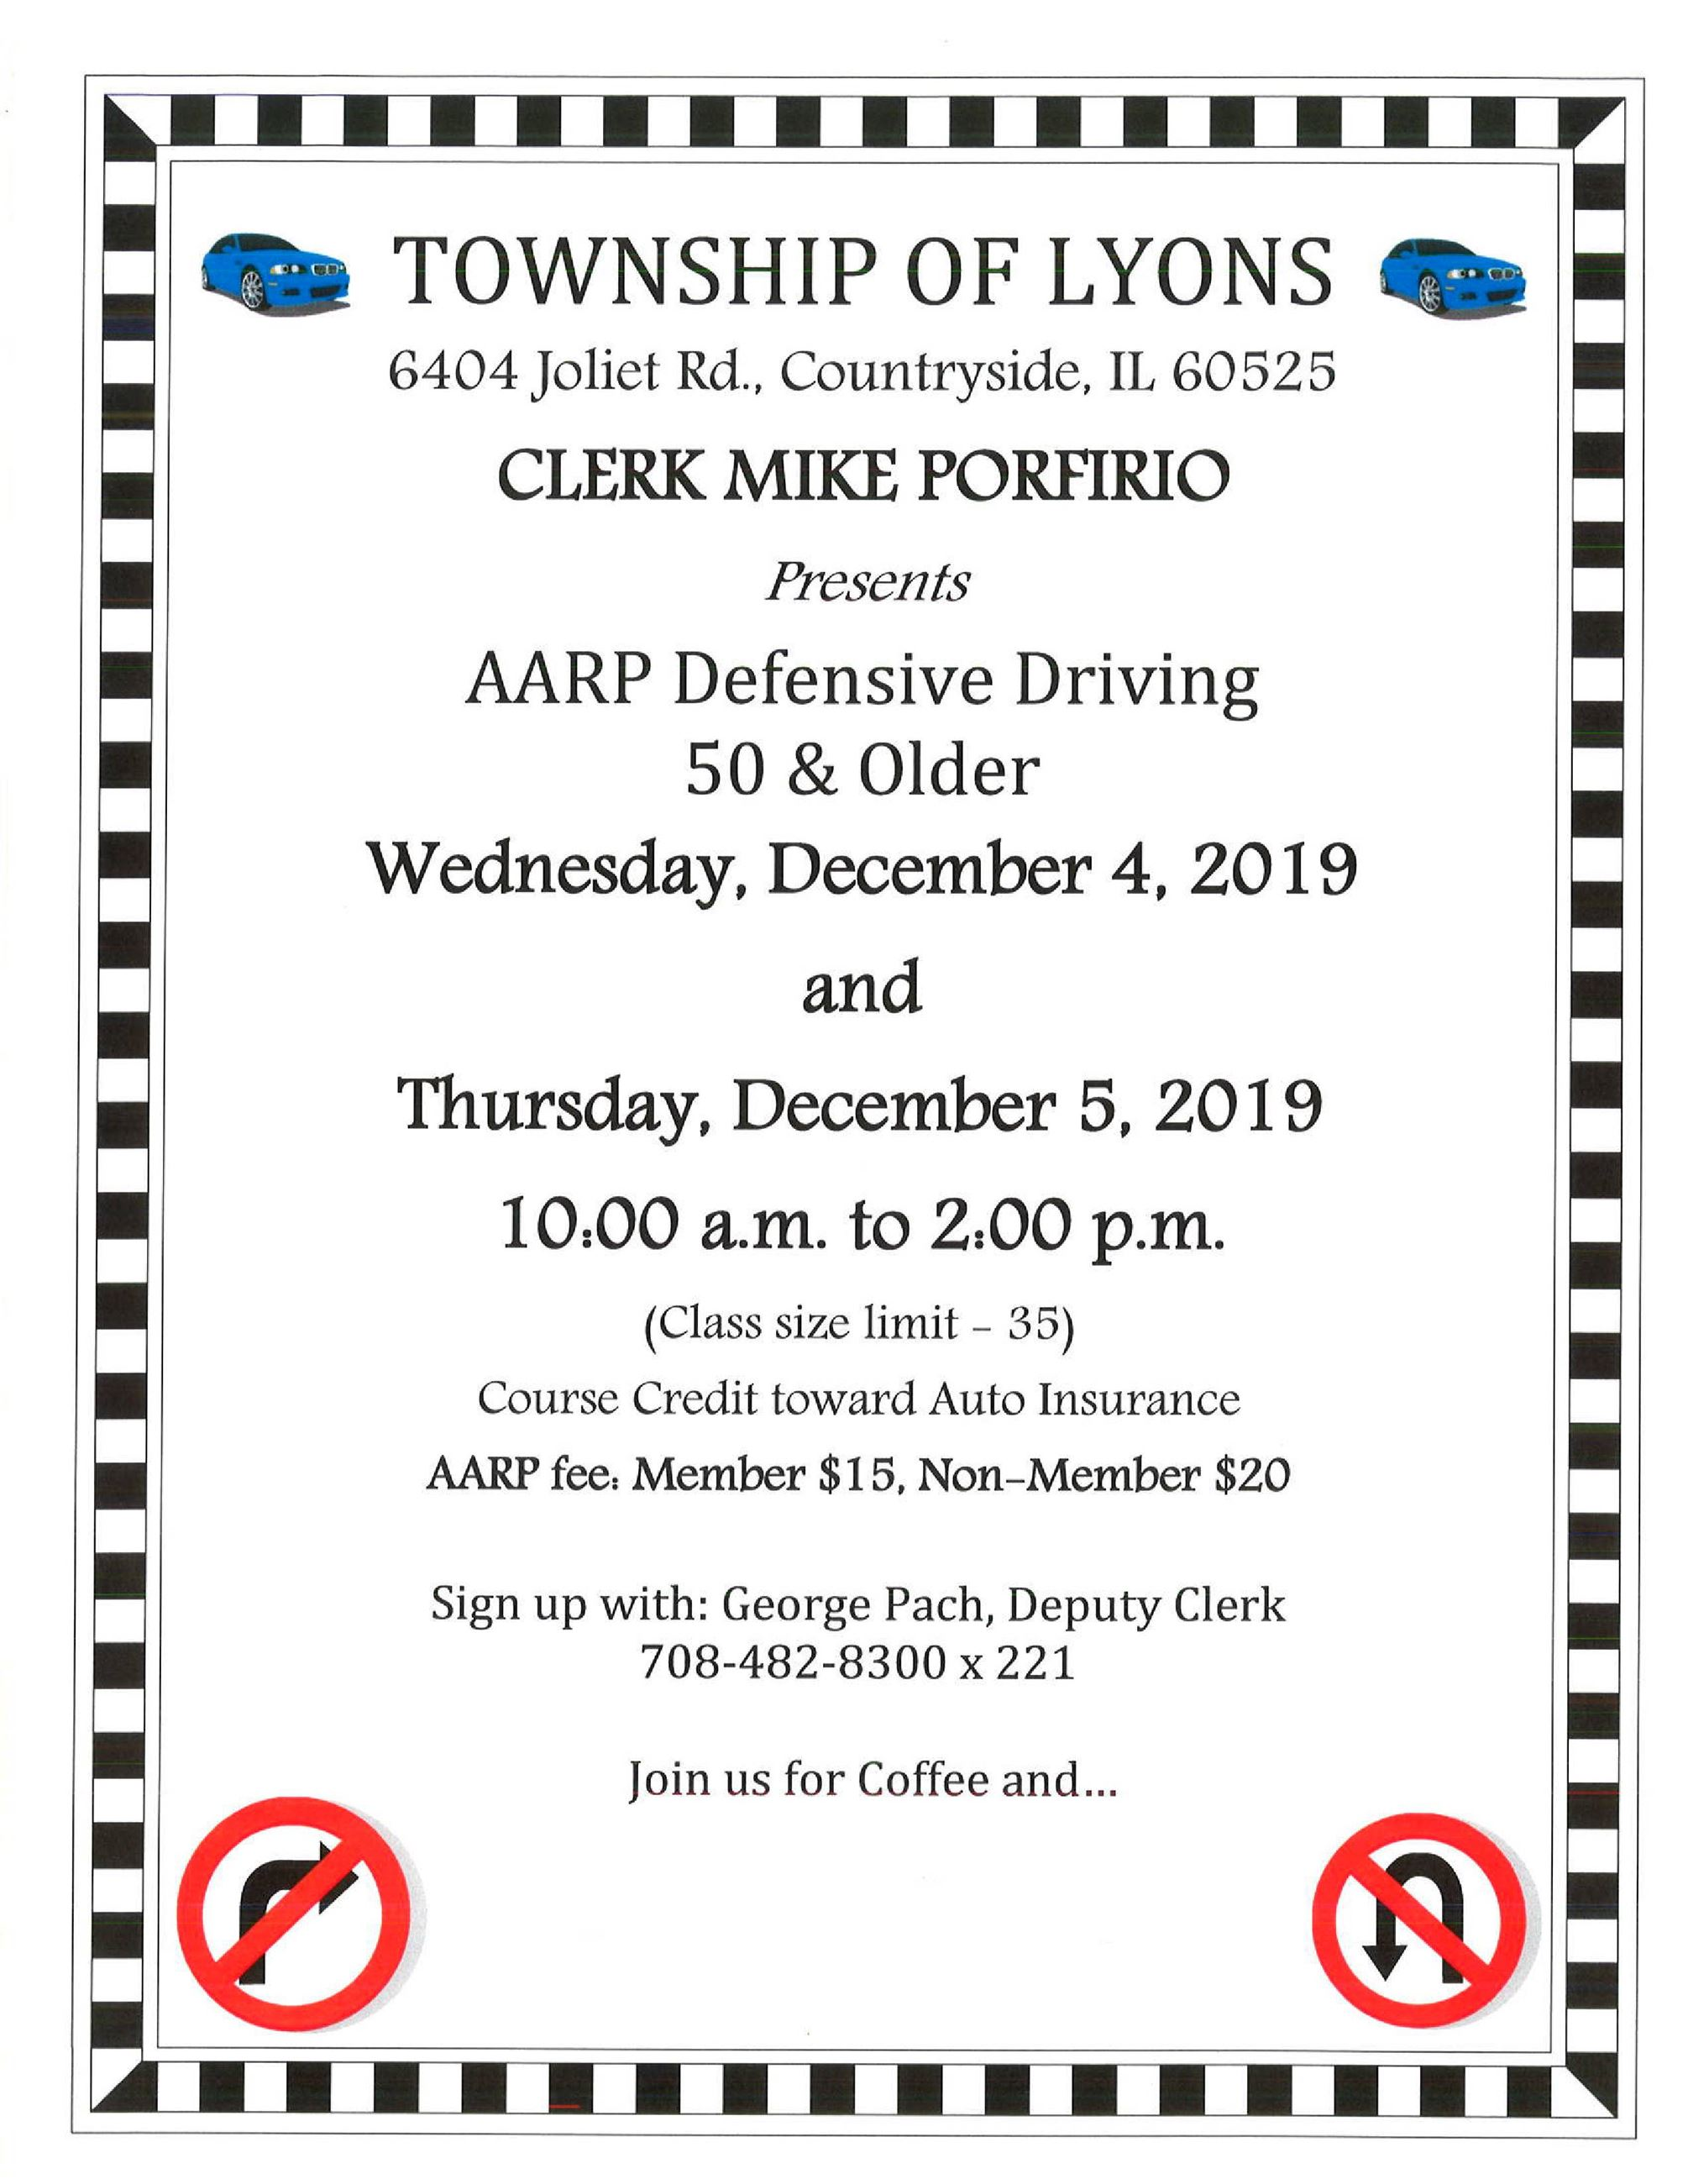 AARP Defensive Driving 50&Older Flyer